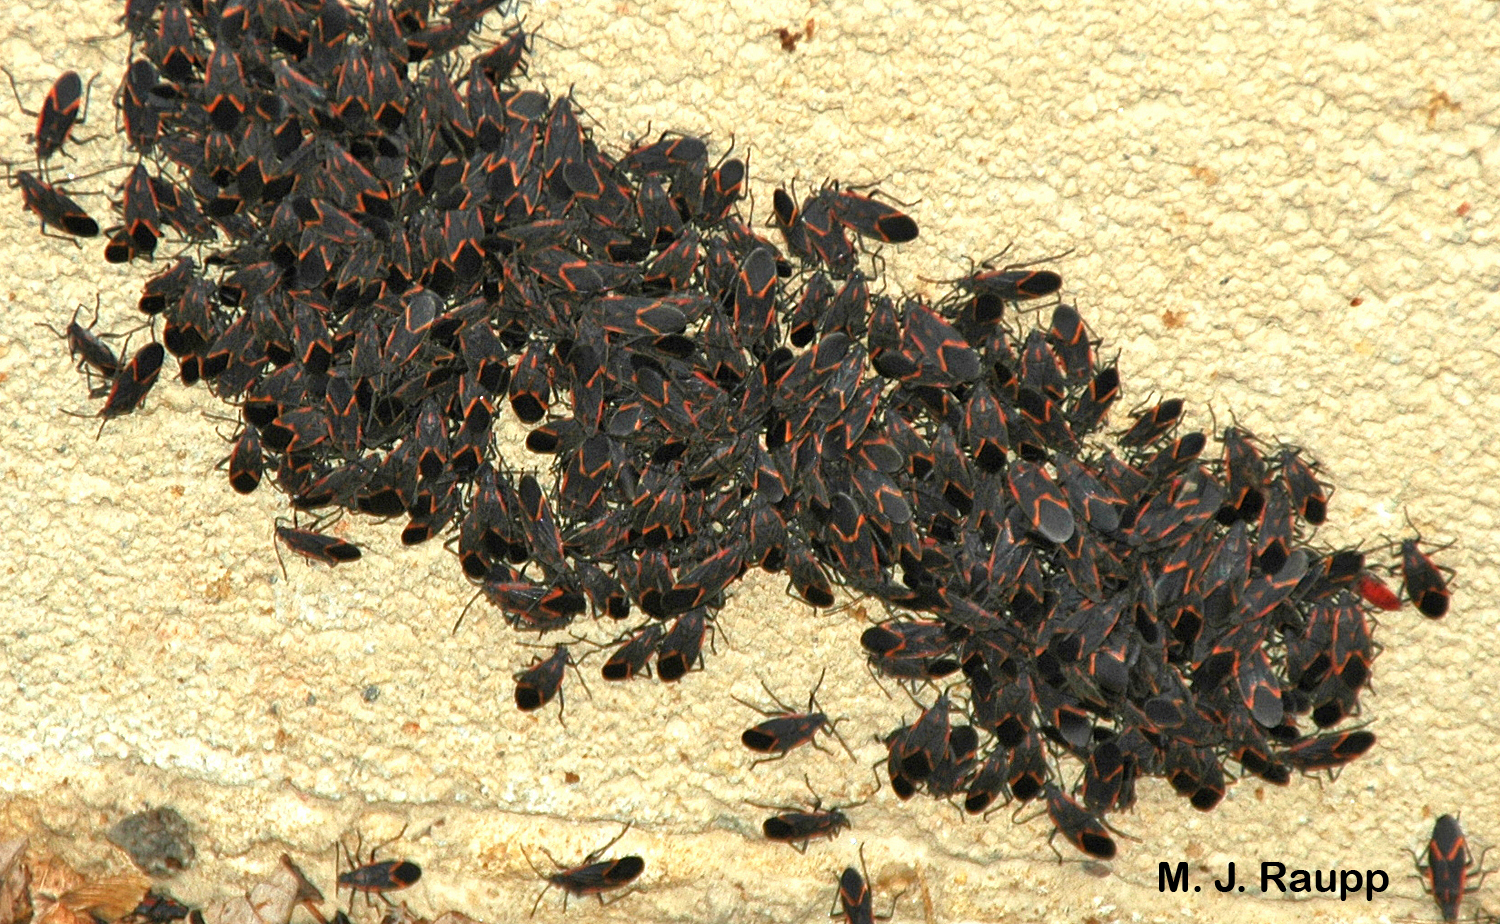 Hundreds of boxelder bugs bask in the sun on the side of the boxelder bungalow.